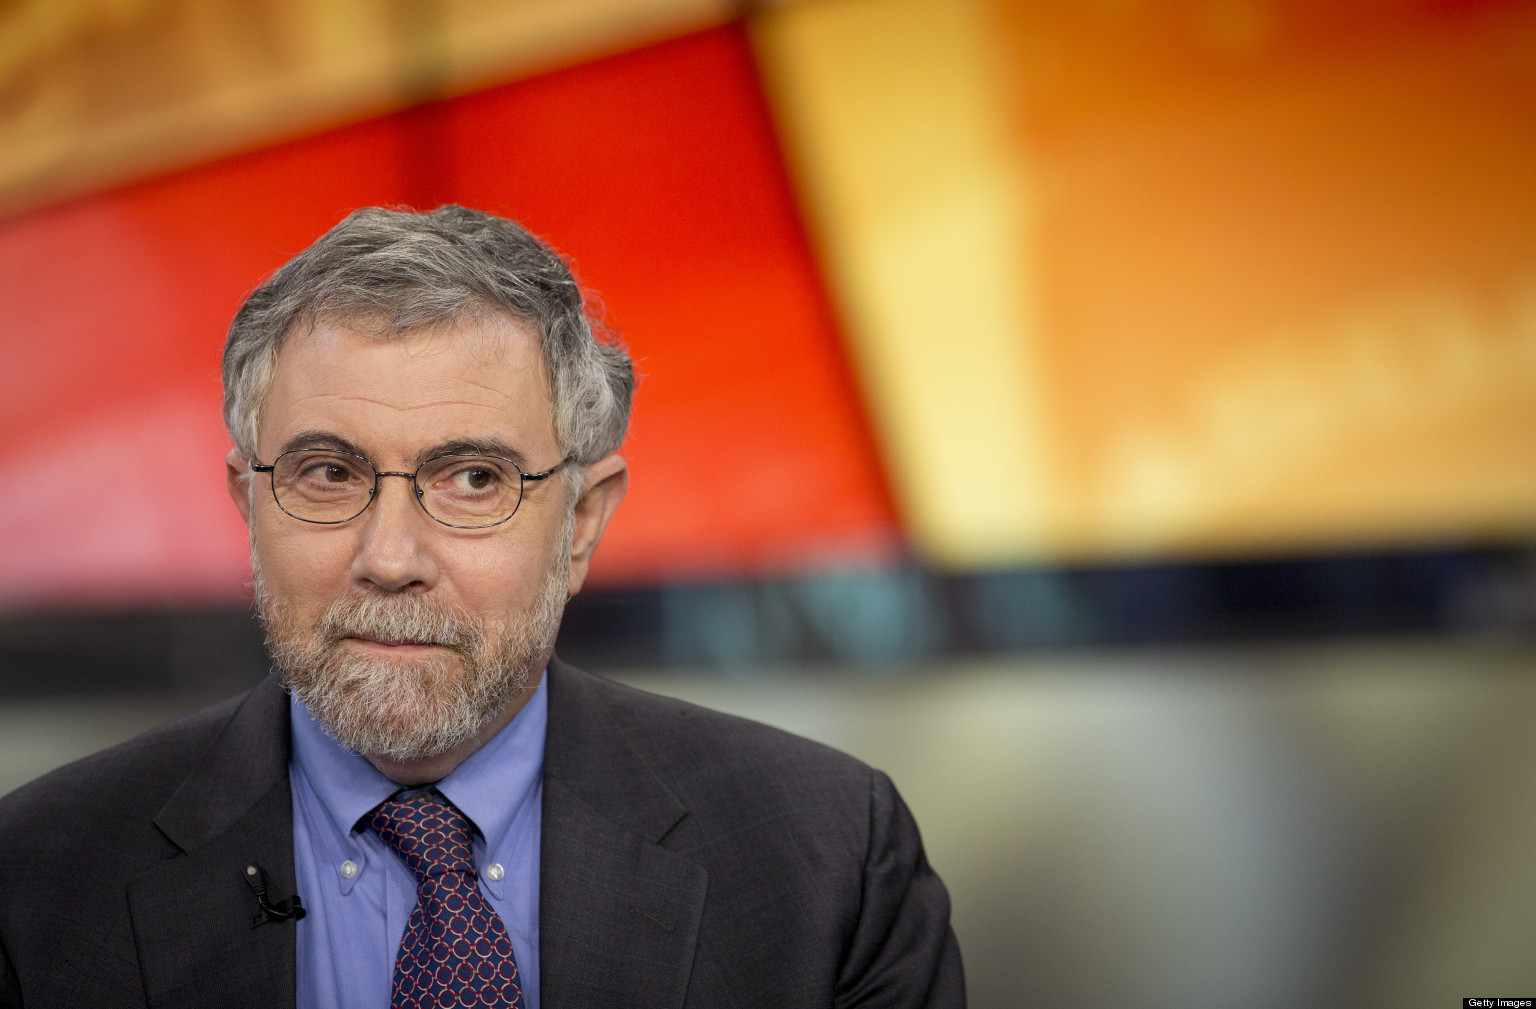 from Anderson paul krugman gay